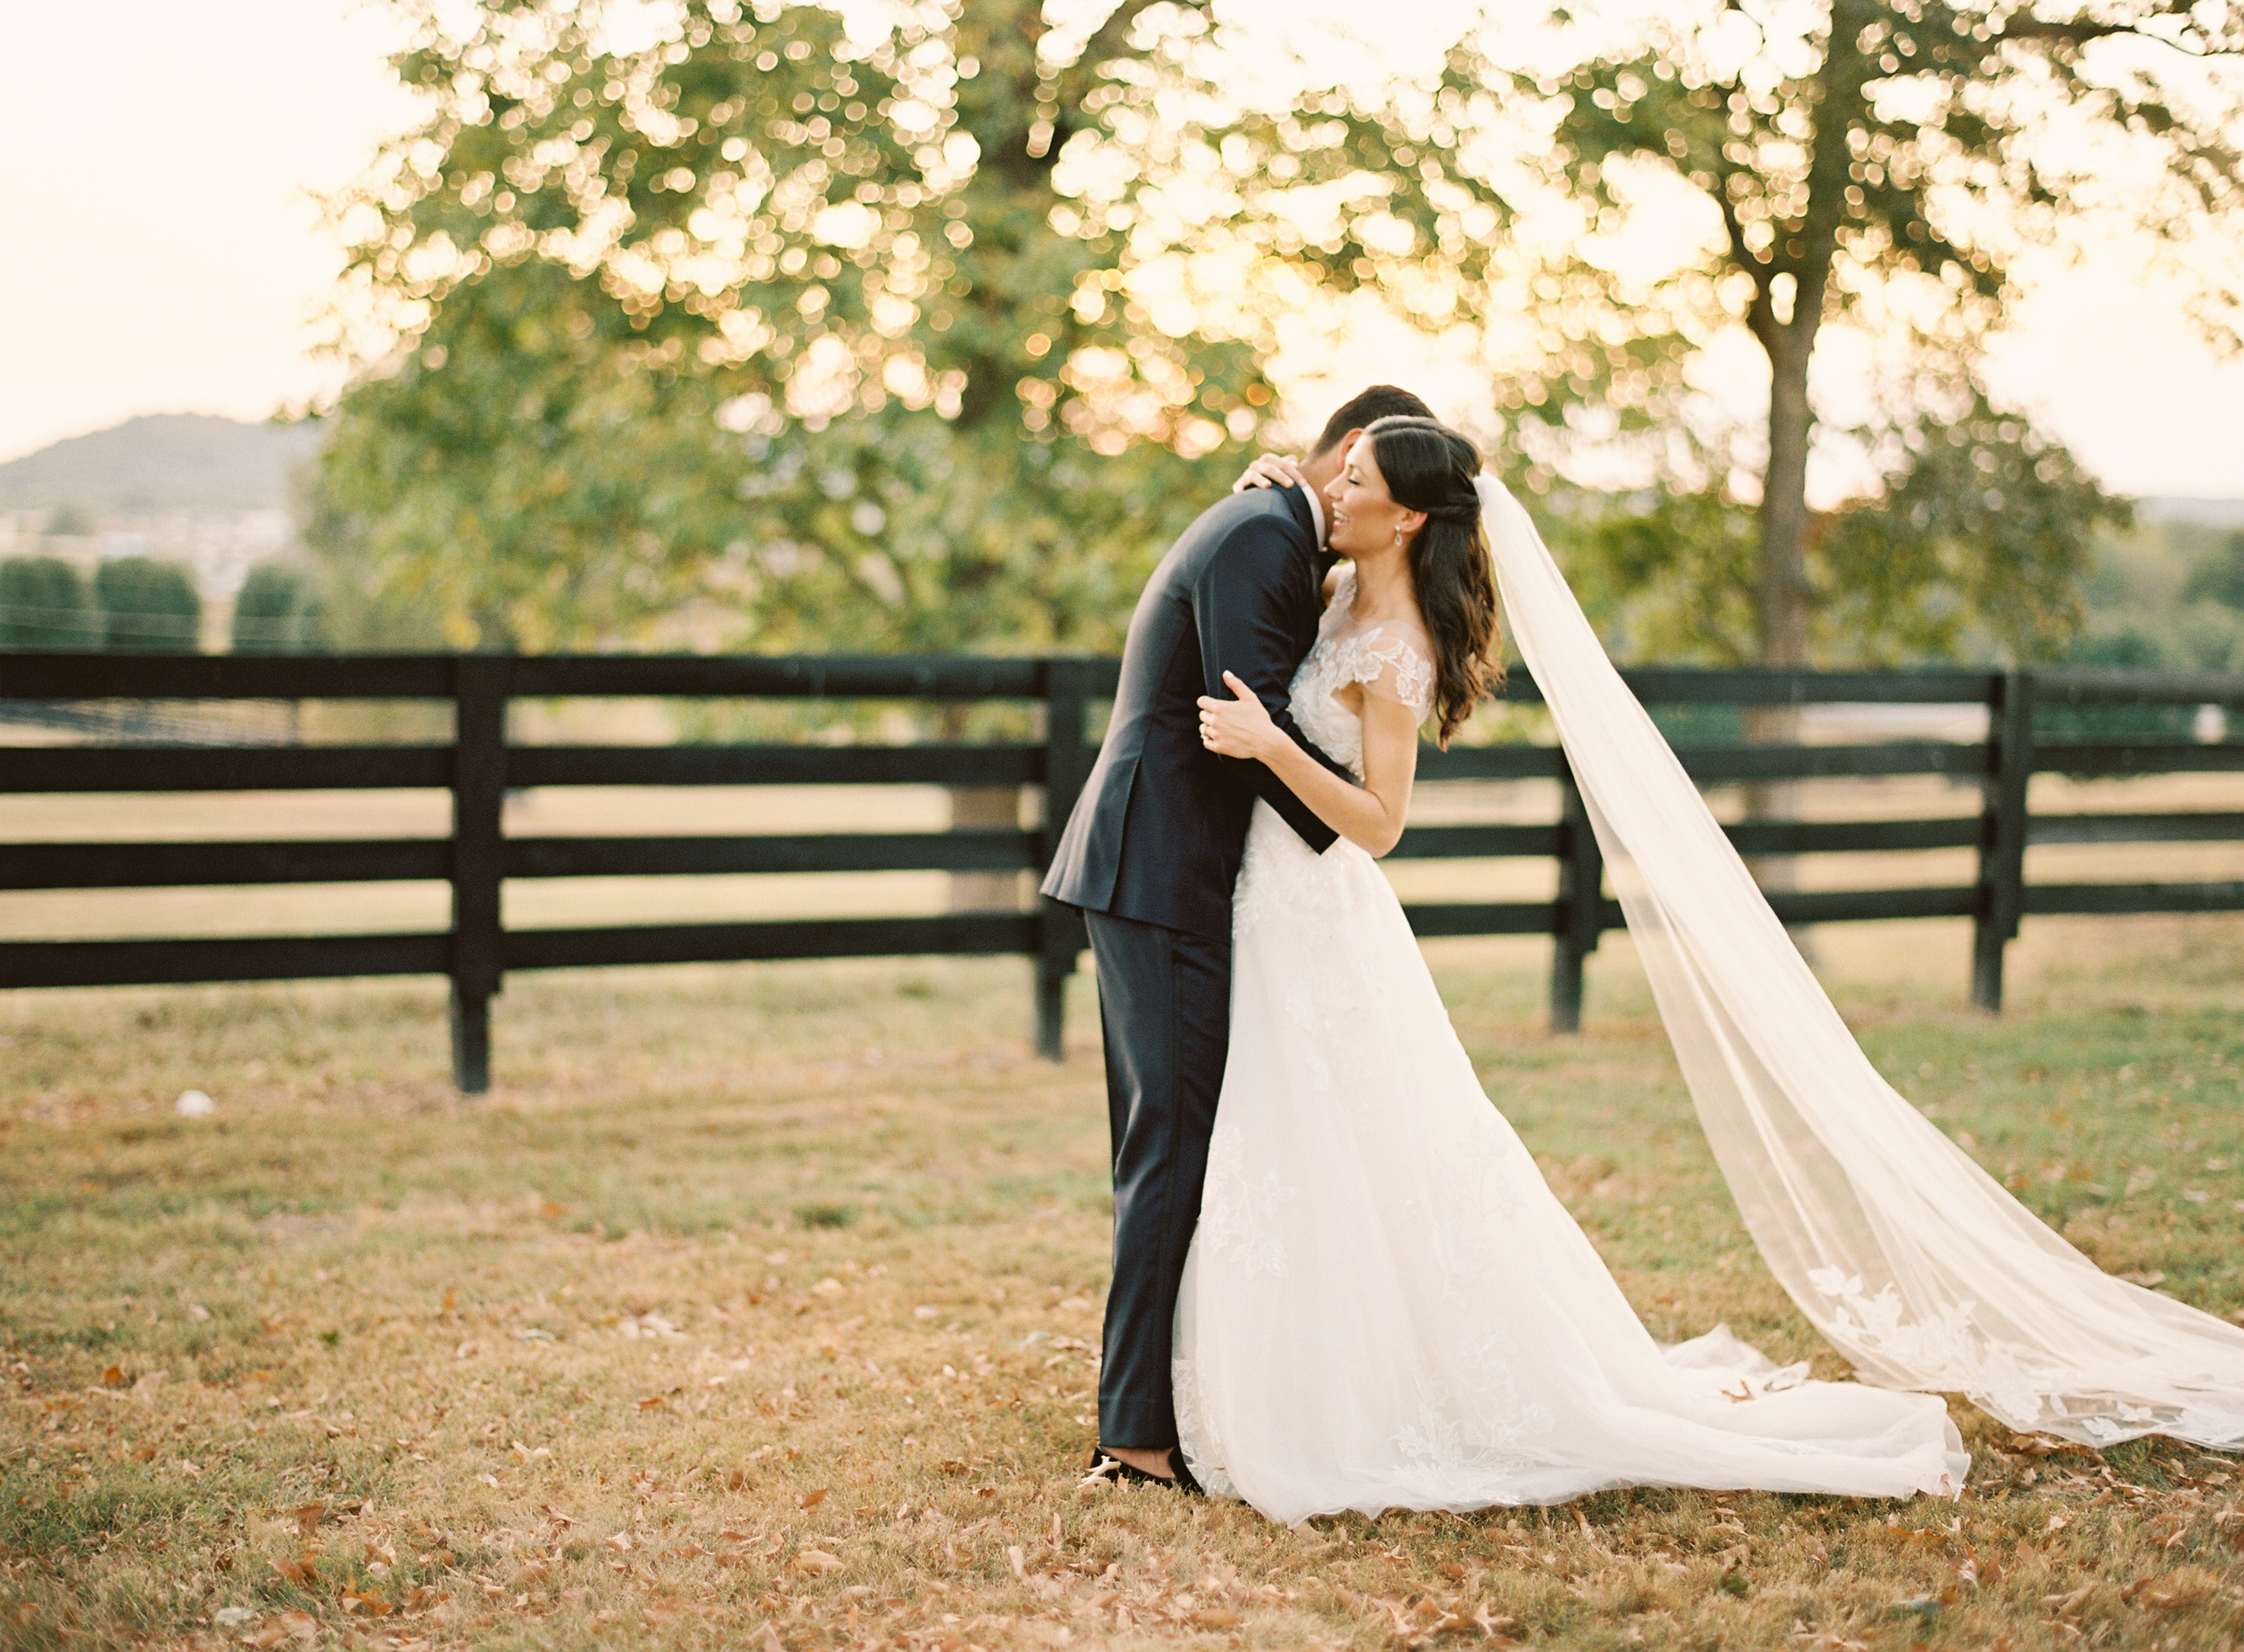 Fall Nashville wedding at Autumn Crest Farm featured on Nashville Bride Guide